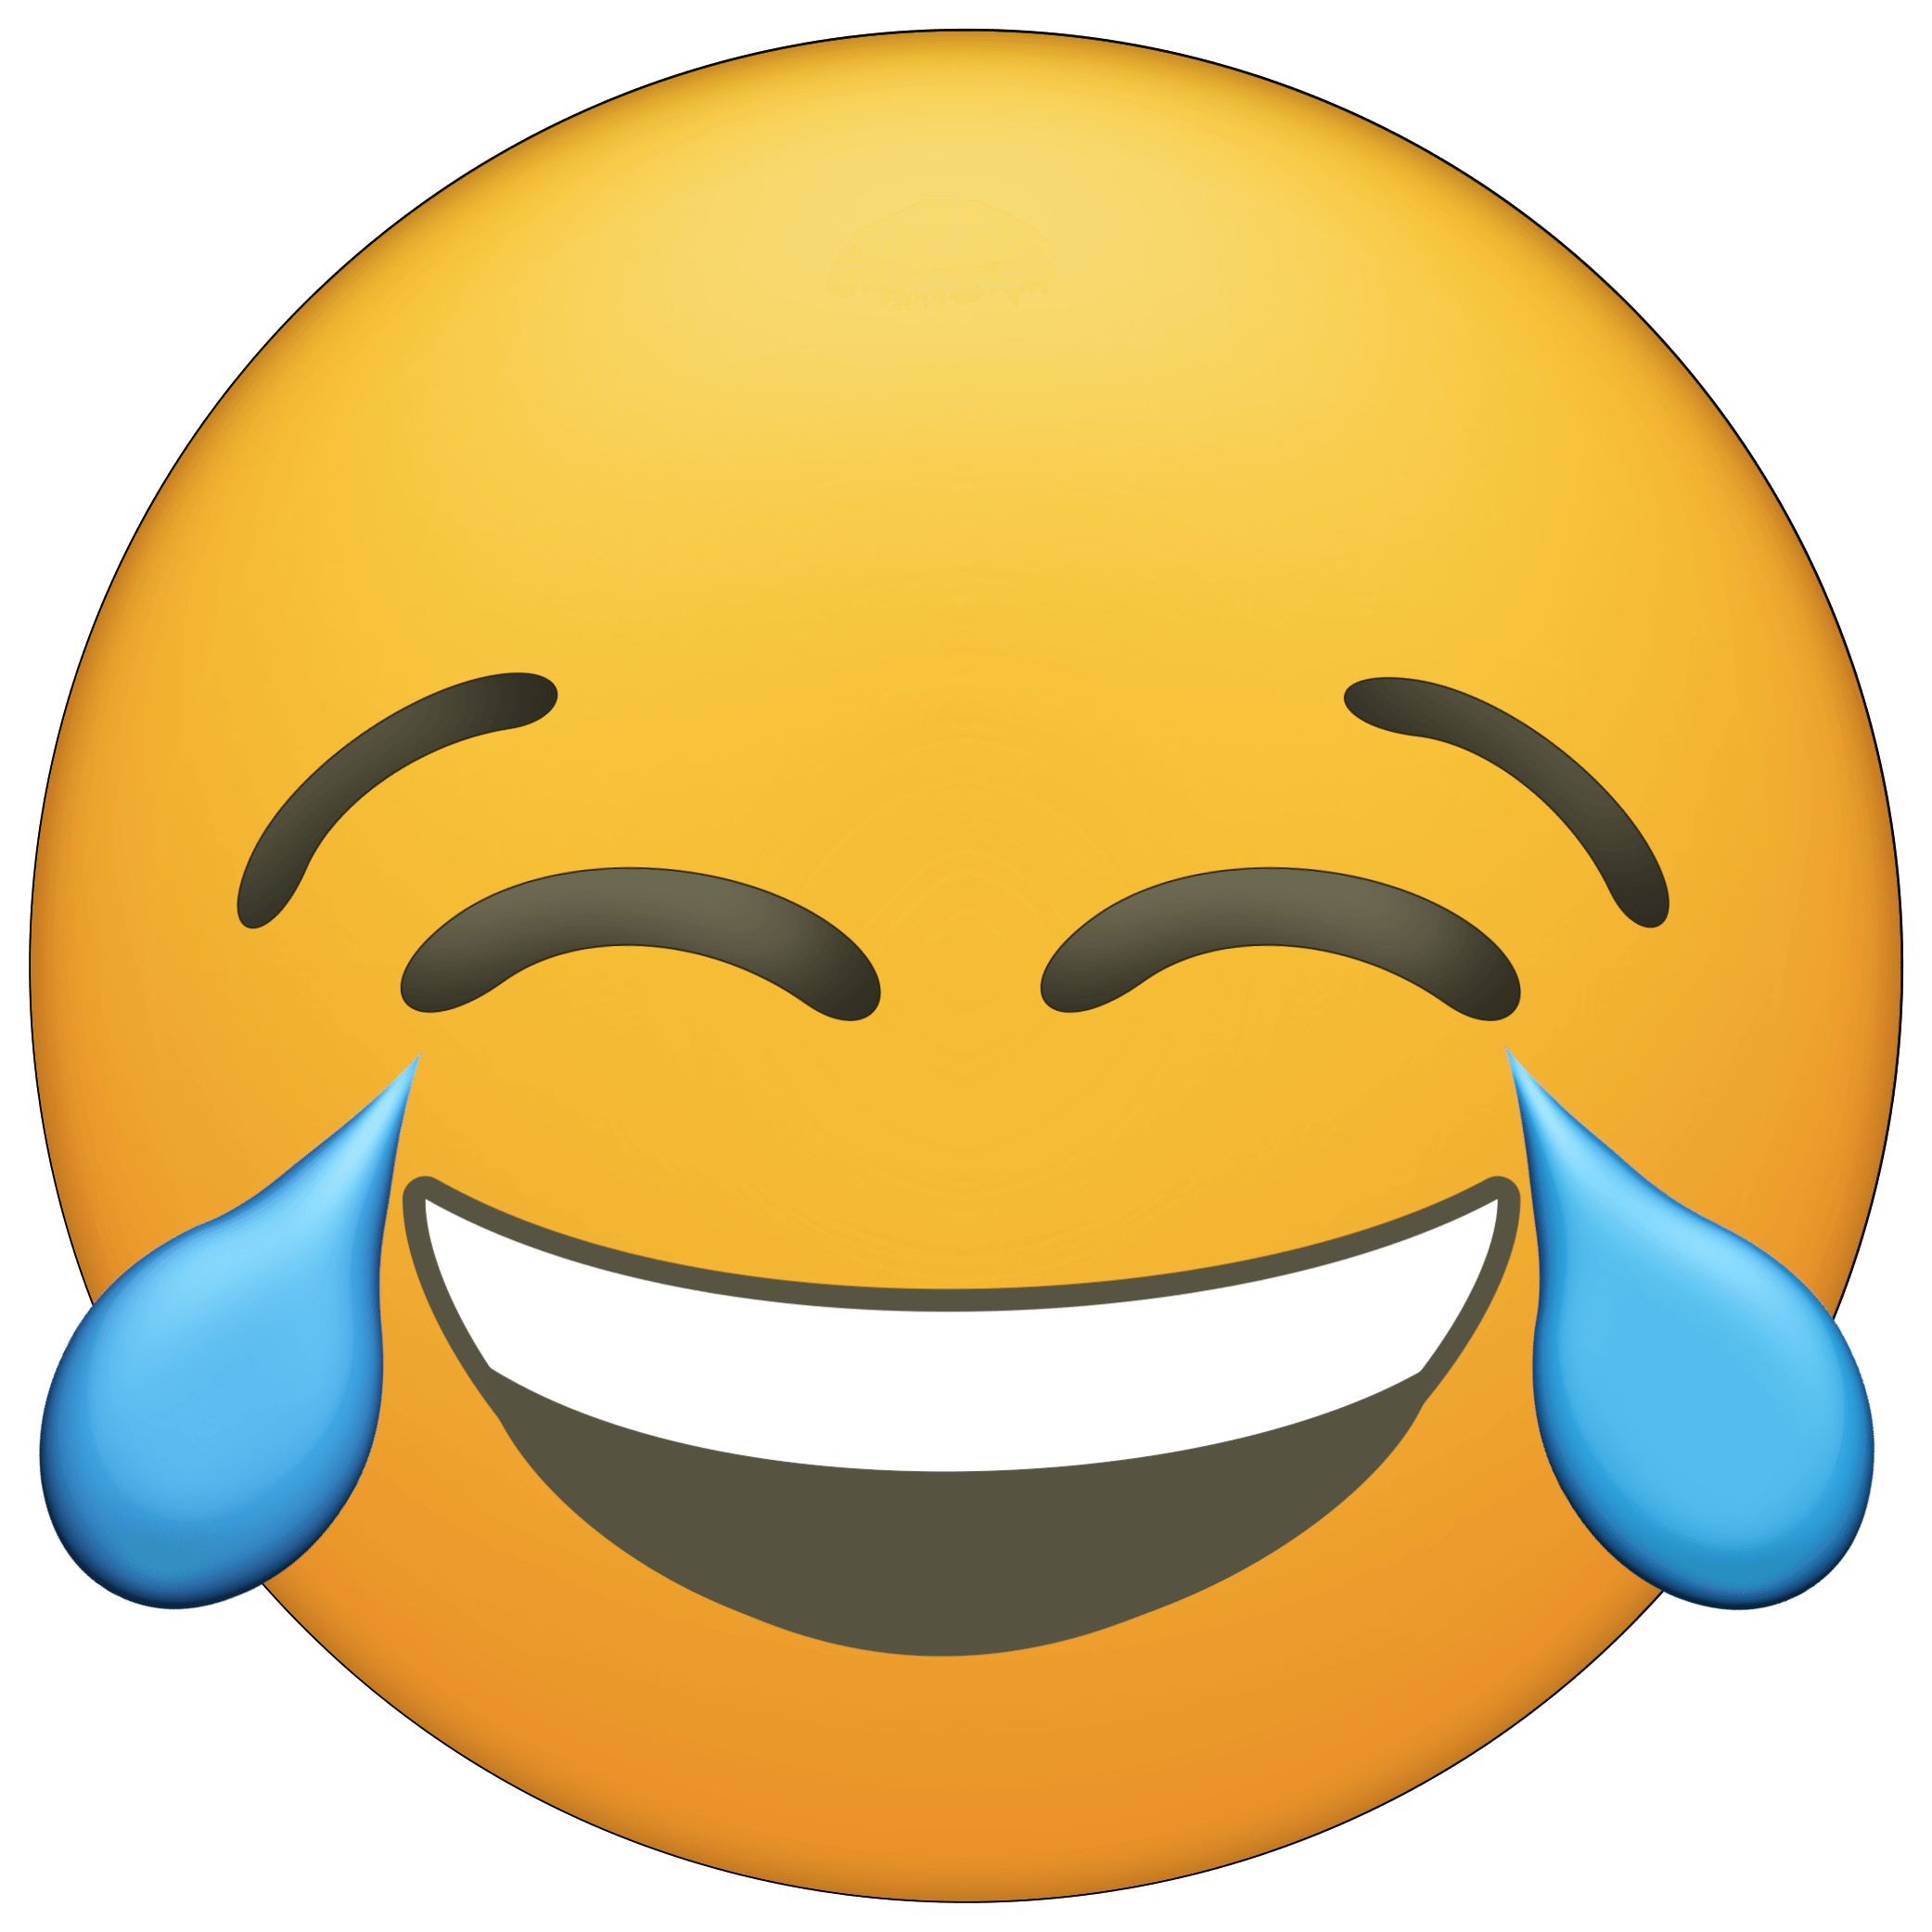 Crying Laughing Png 2083 2083 Emoji Printables Free Emoji Printables Emoji Faces